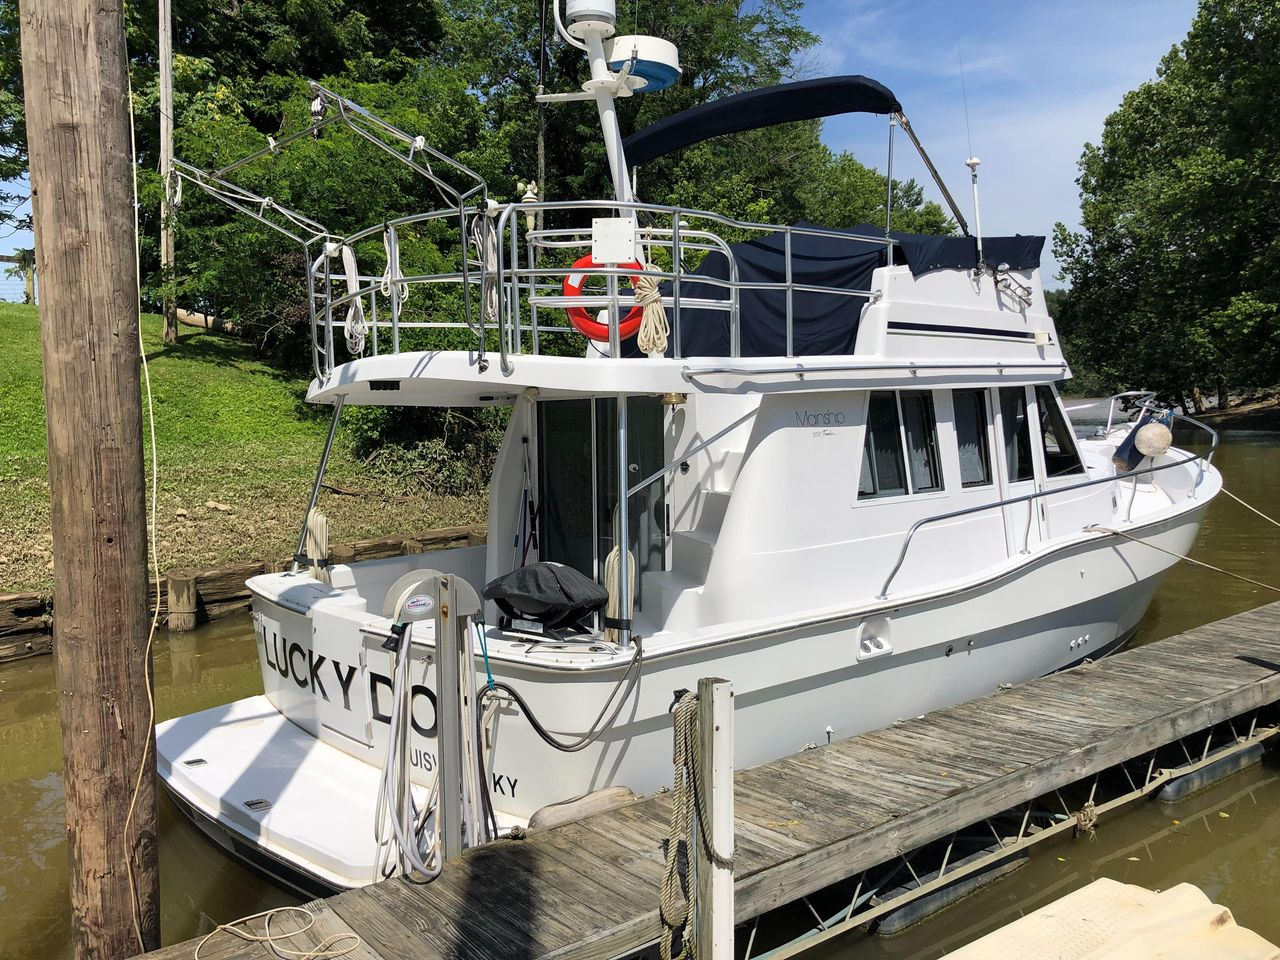 1998 Used Mainship 350 Trawler Cruiser Boat For Sale